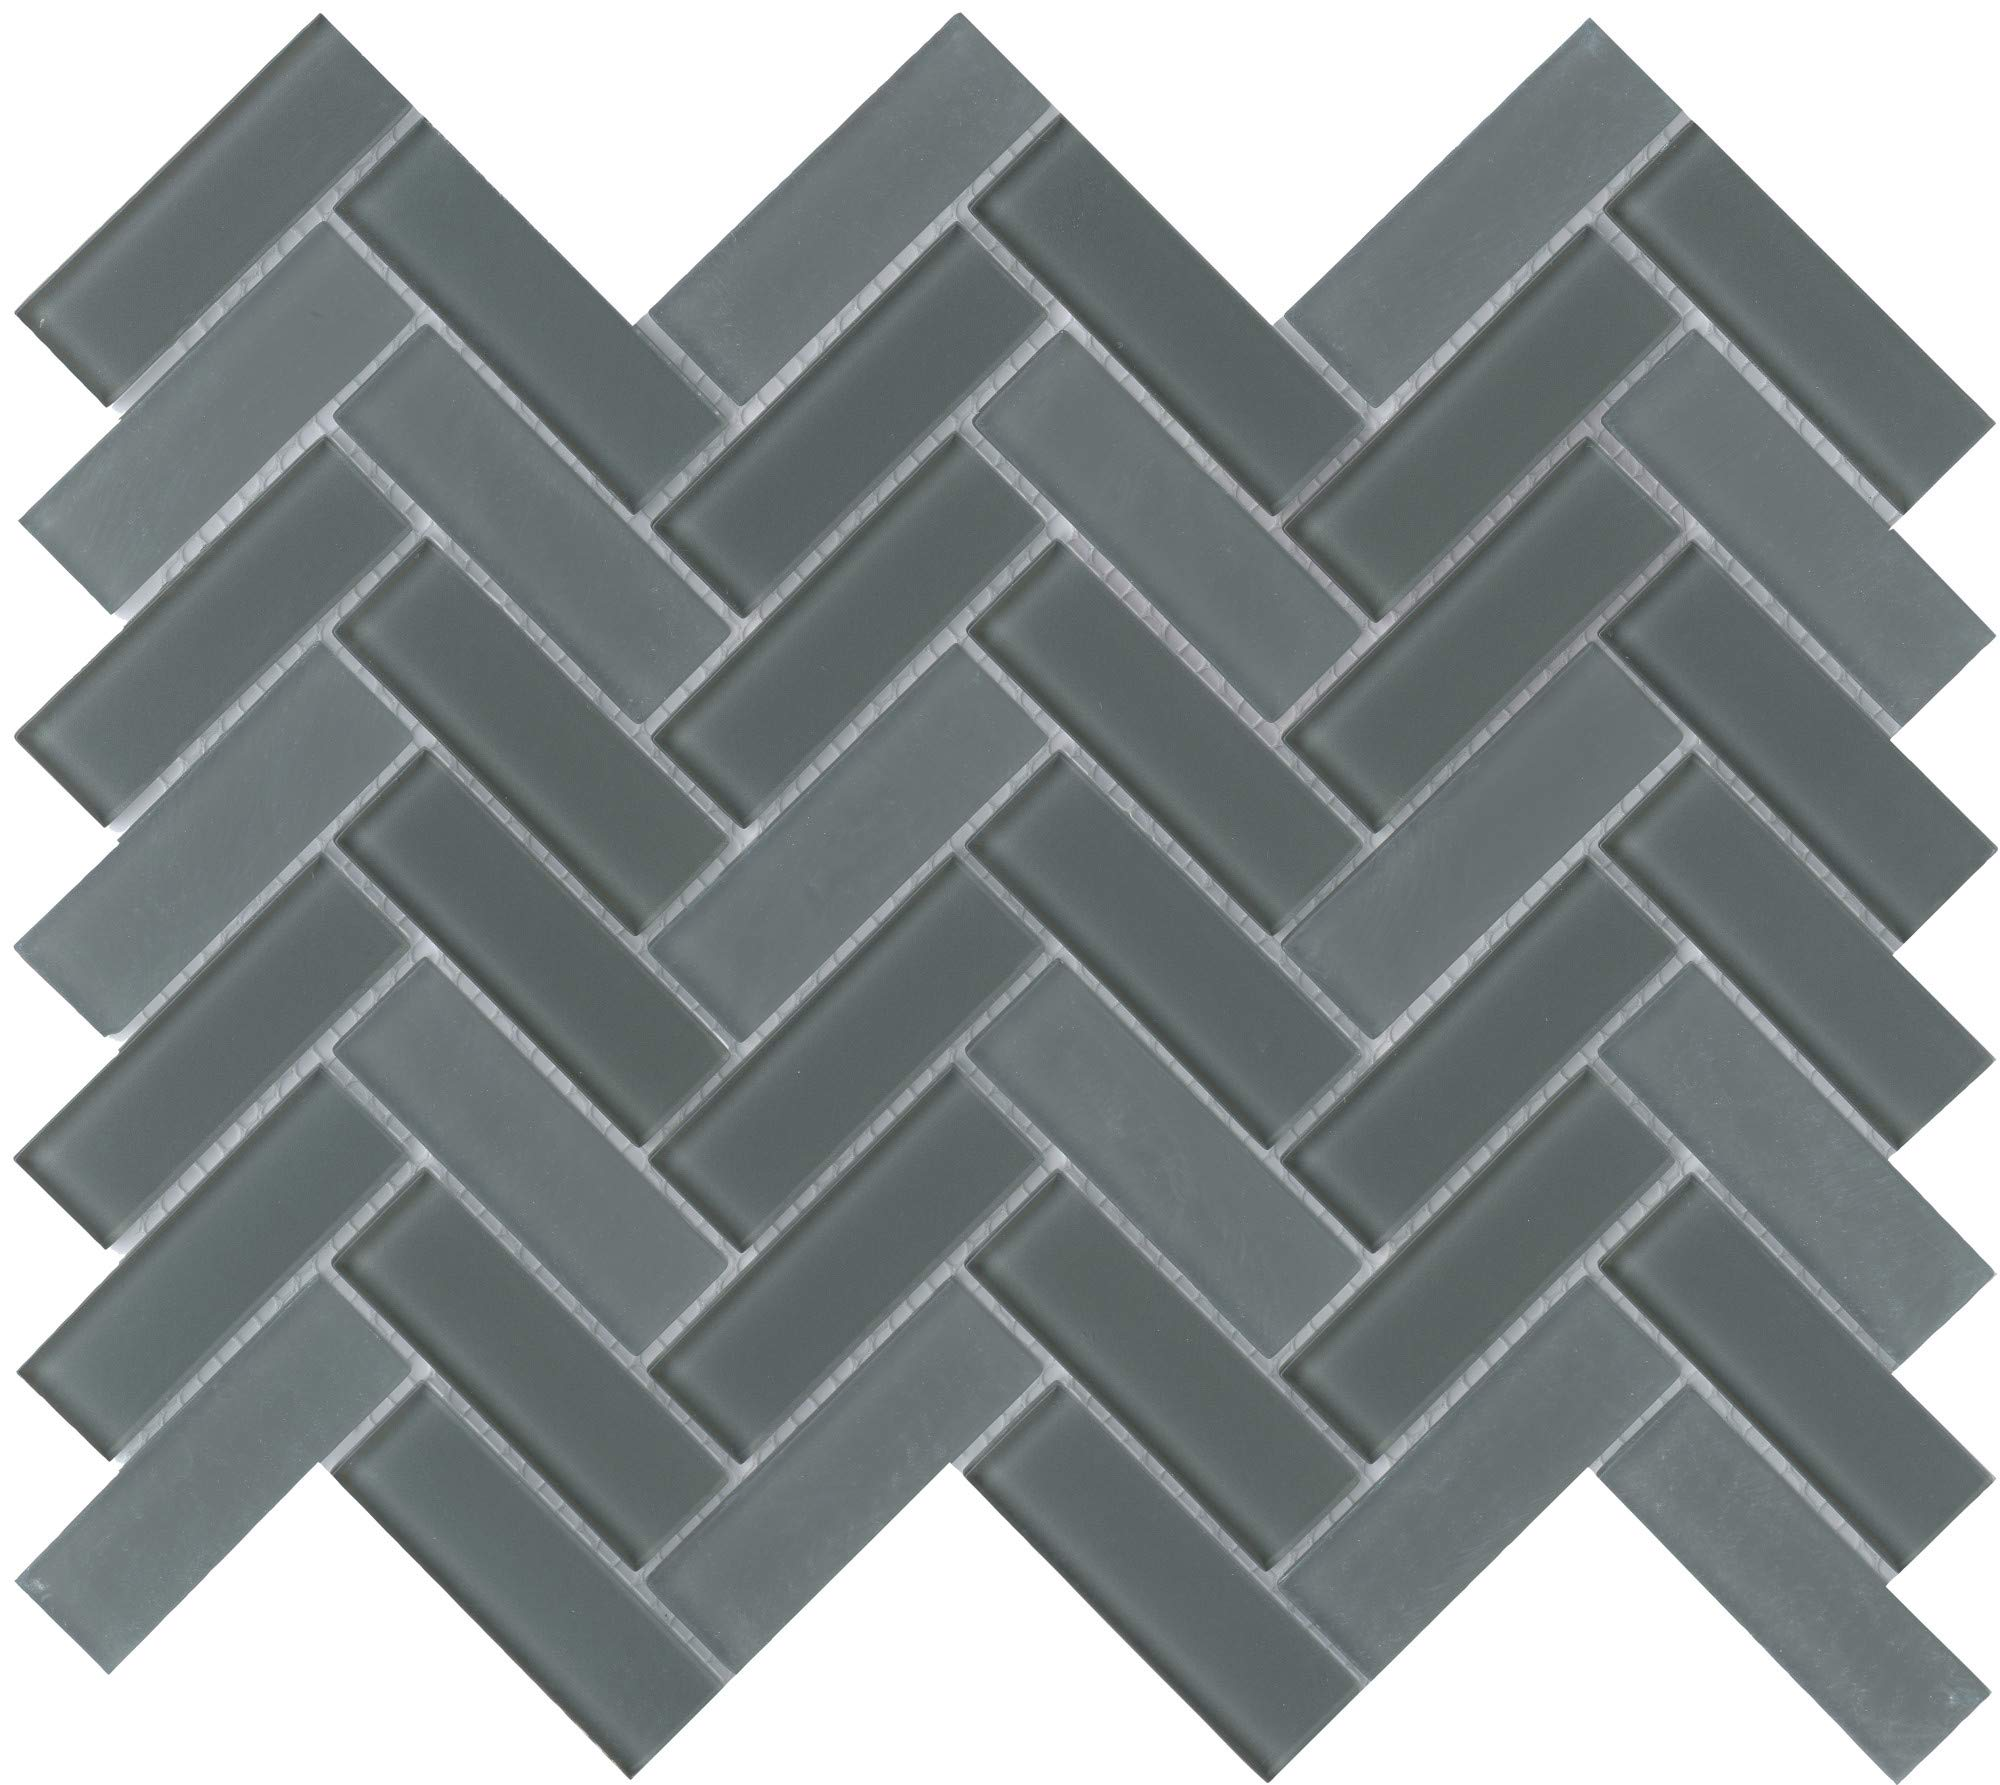 Emser Tile W80CHARWI1013MHB Charisma - 9-11/16'' x 13-1/16'' Herringbone Backsplash Mosaic Tile - Varied Glass Visual